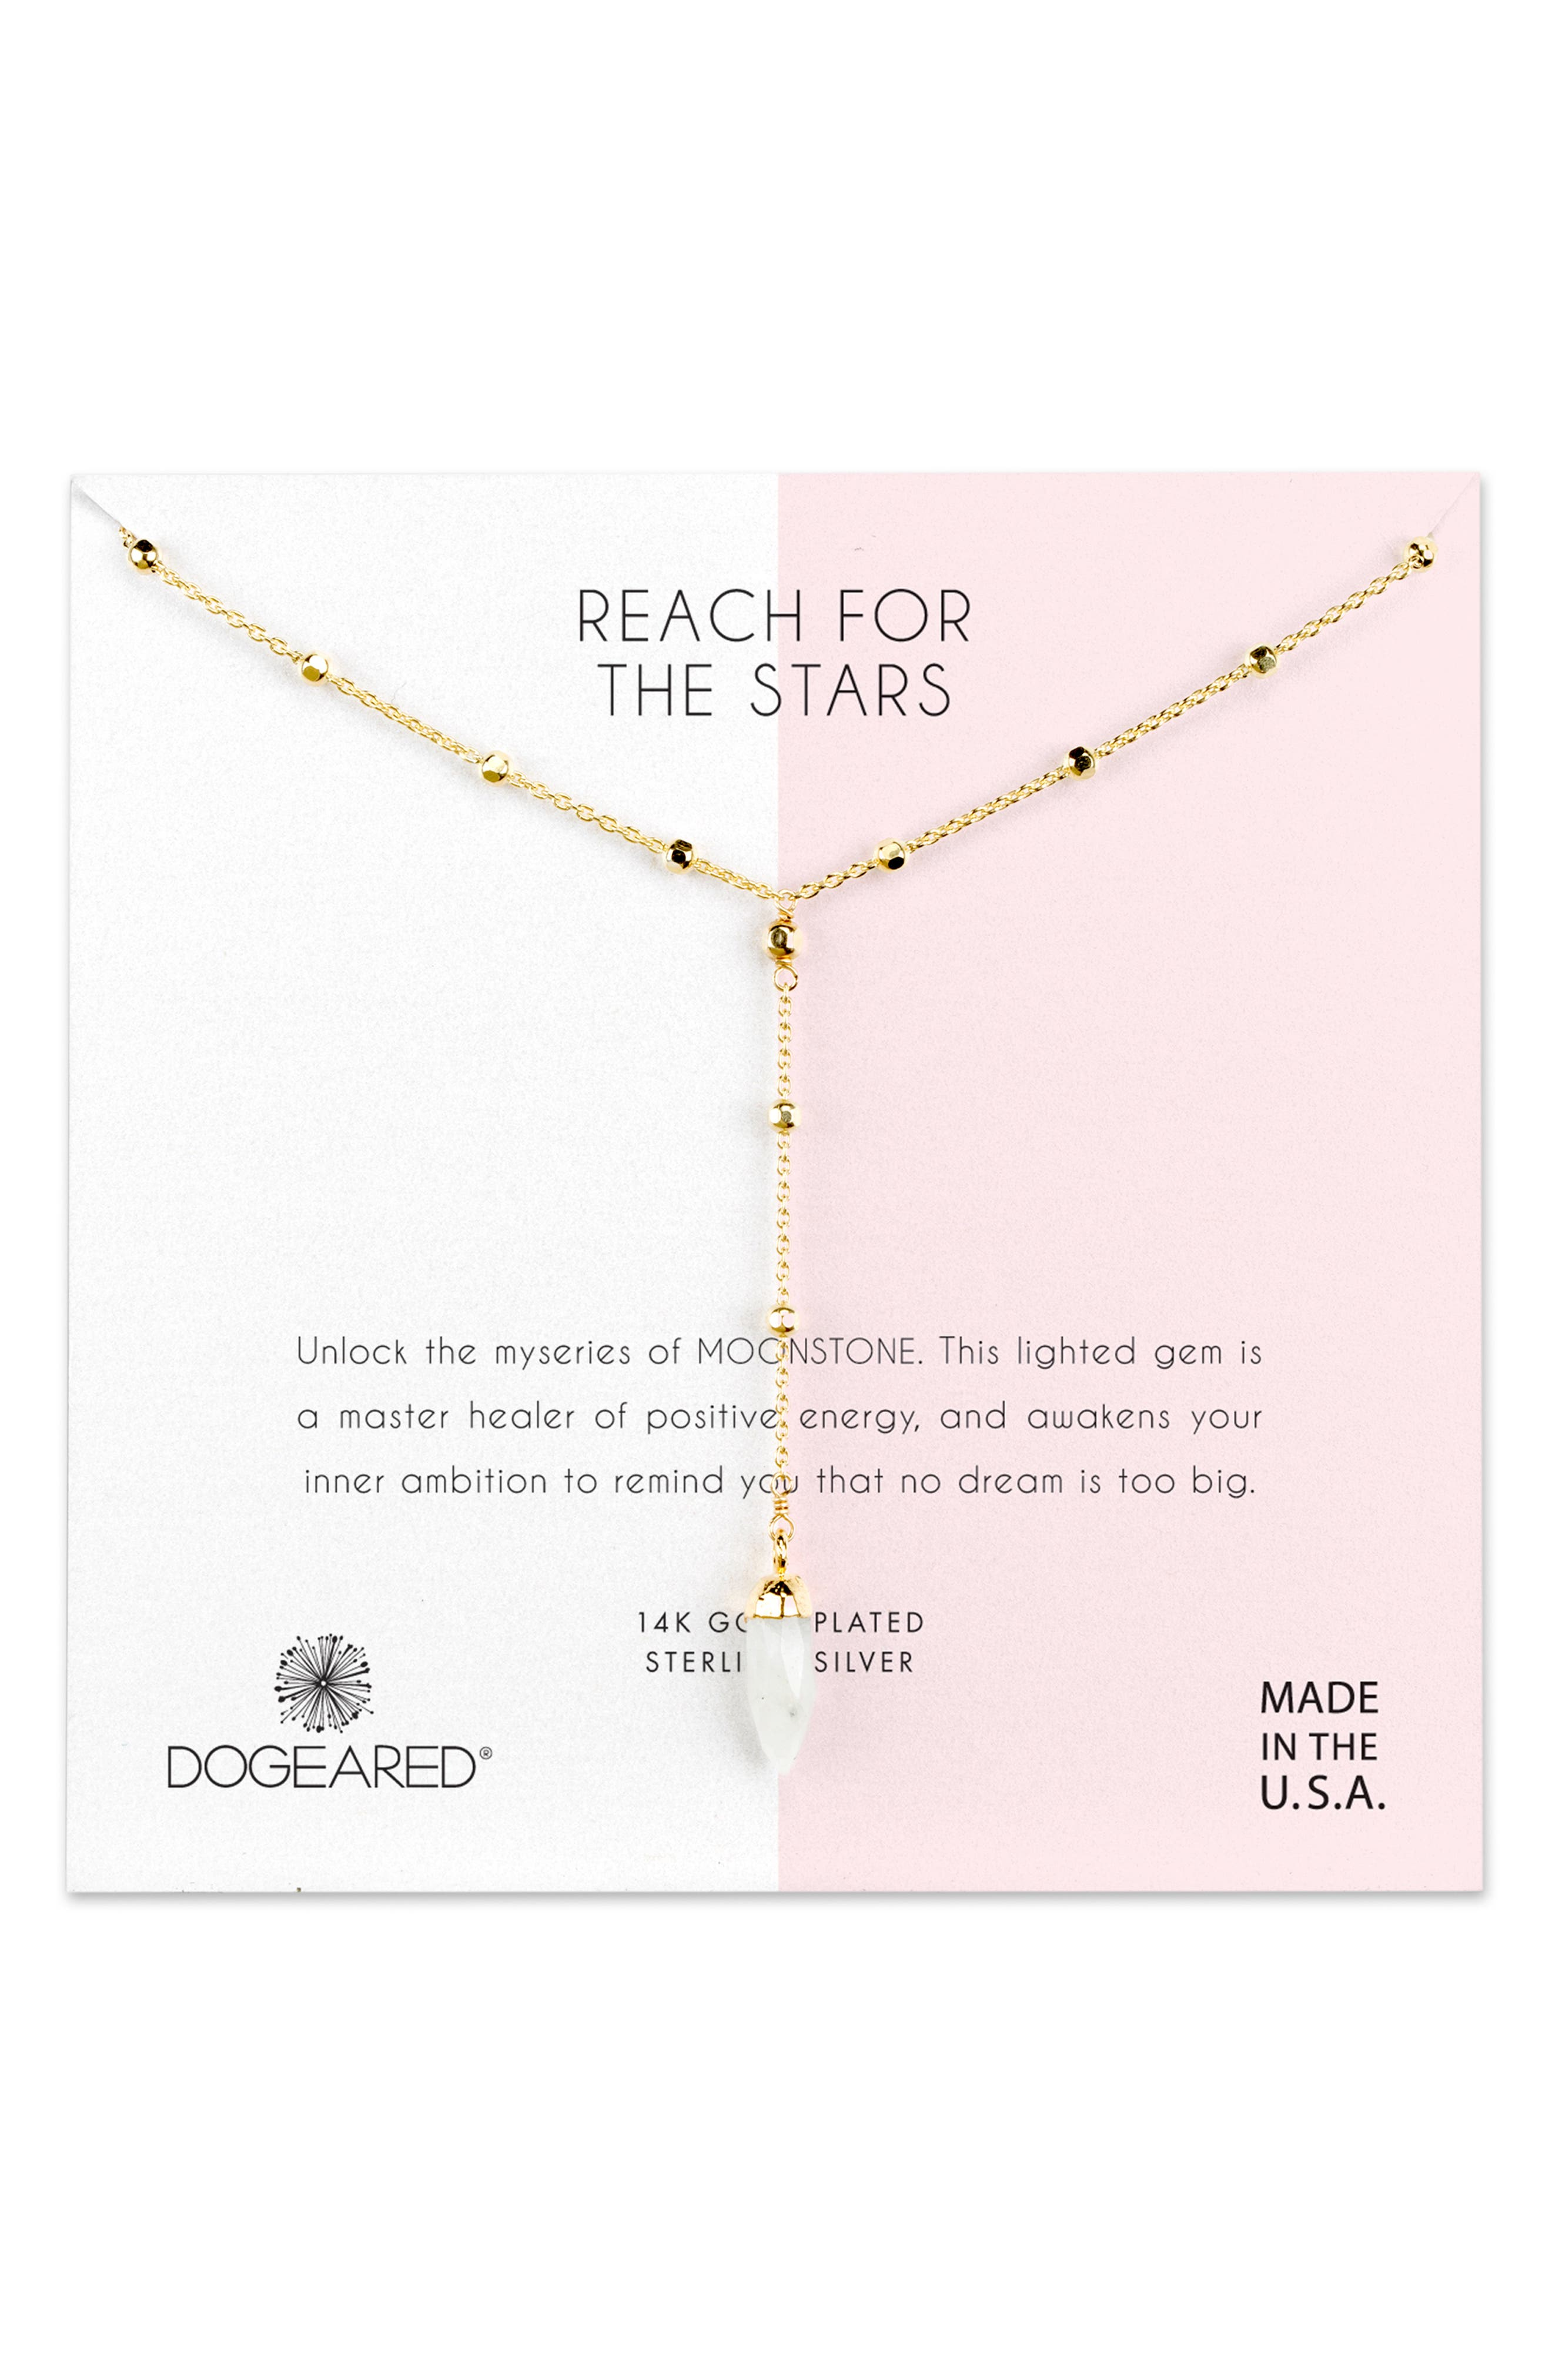 Reach For the Stars Y-Necklace,                             Main thumbnail 1, color,                             710